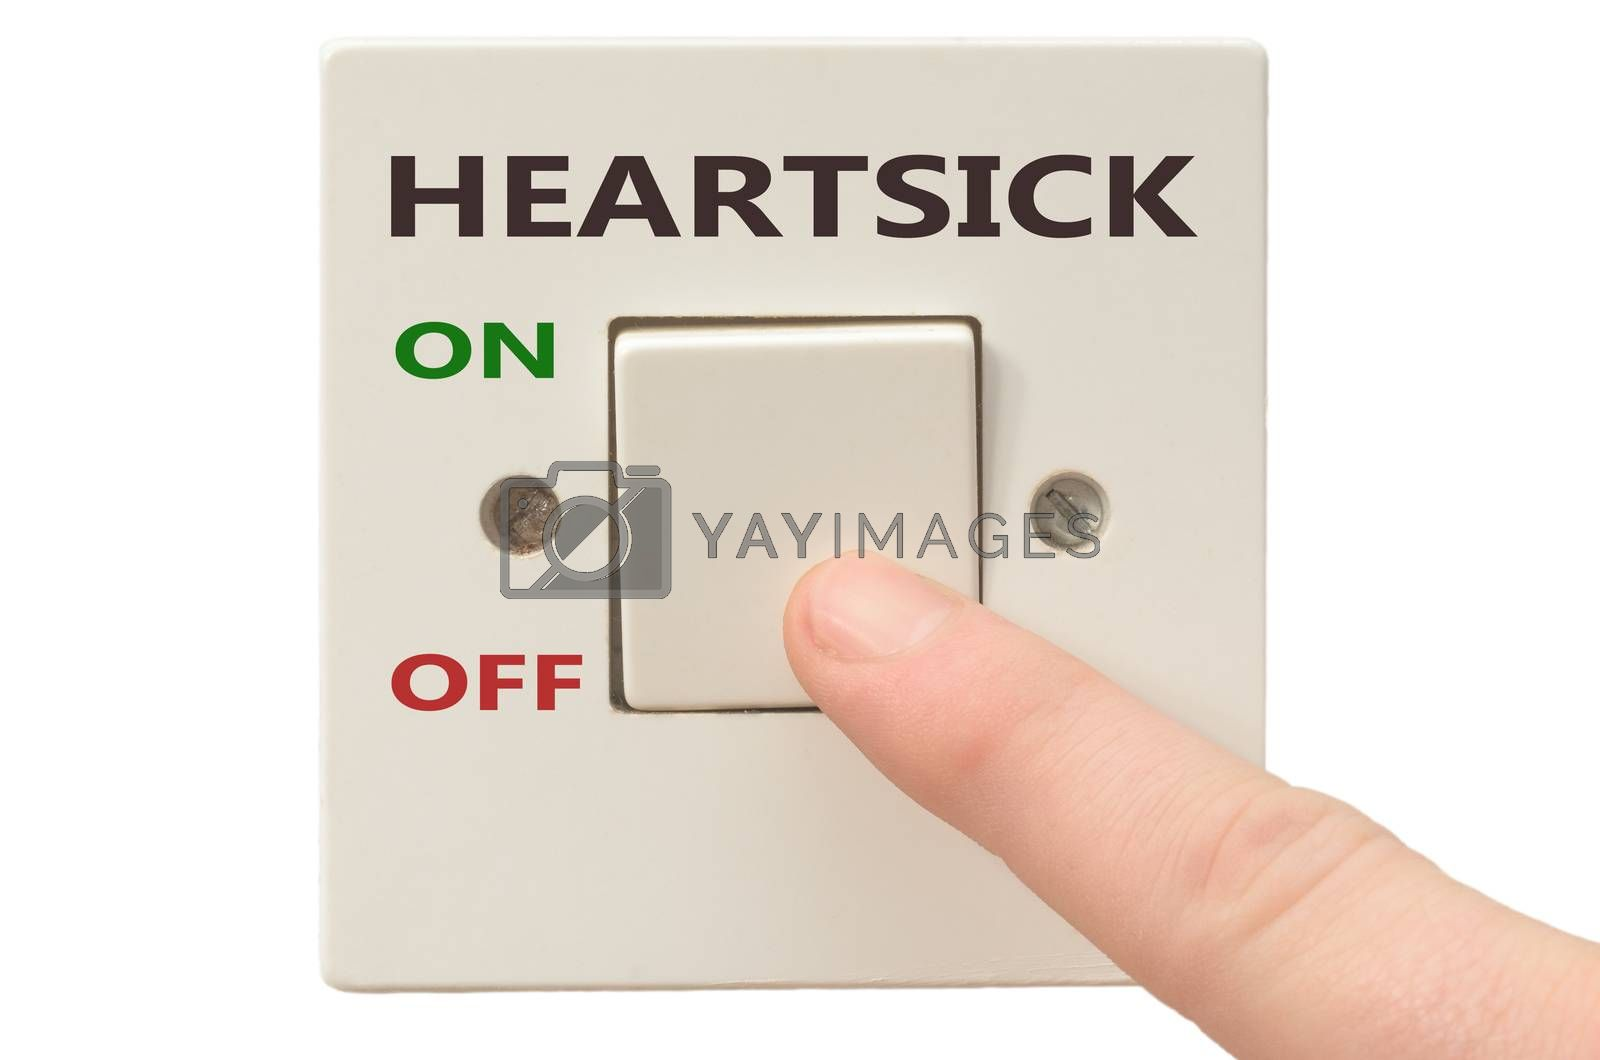 Turning off Heartsick with finger on electrical switch